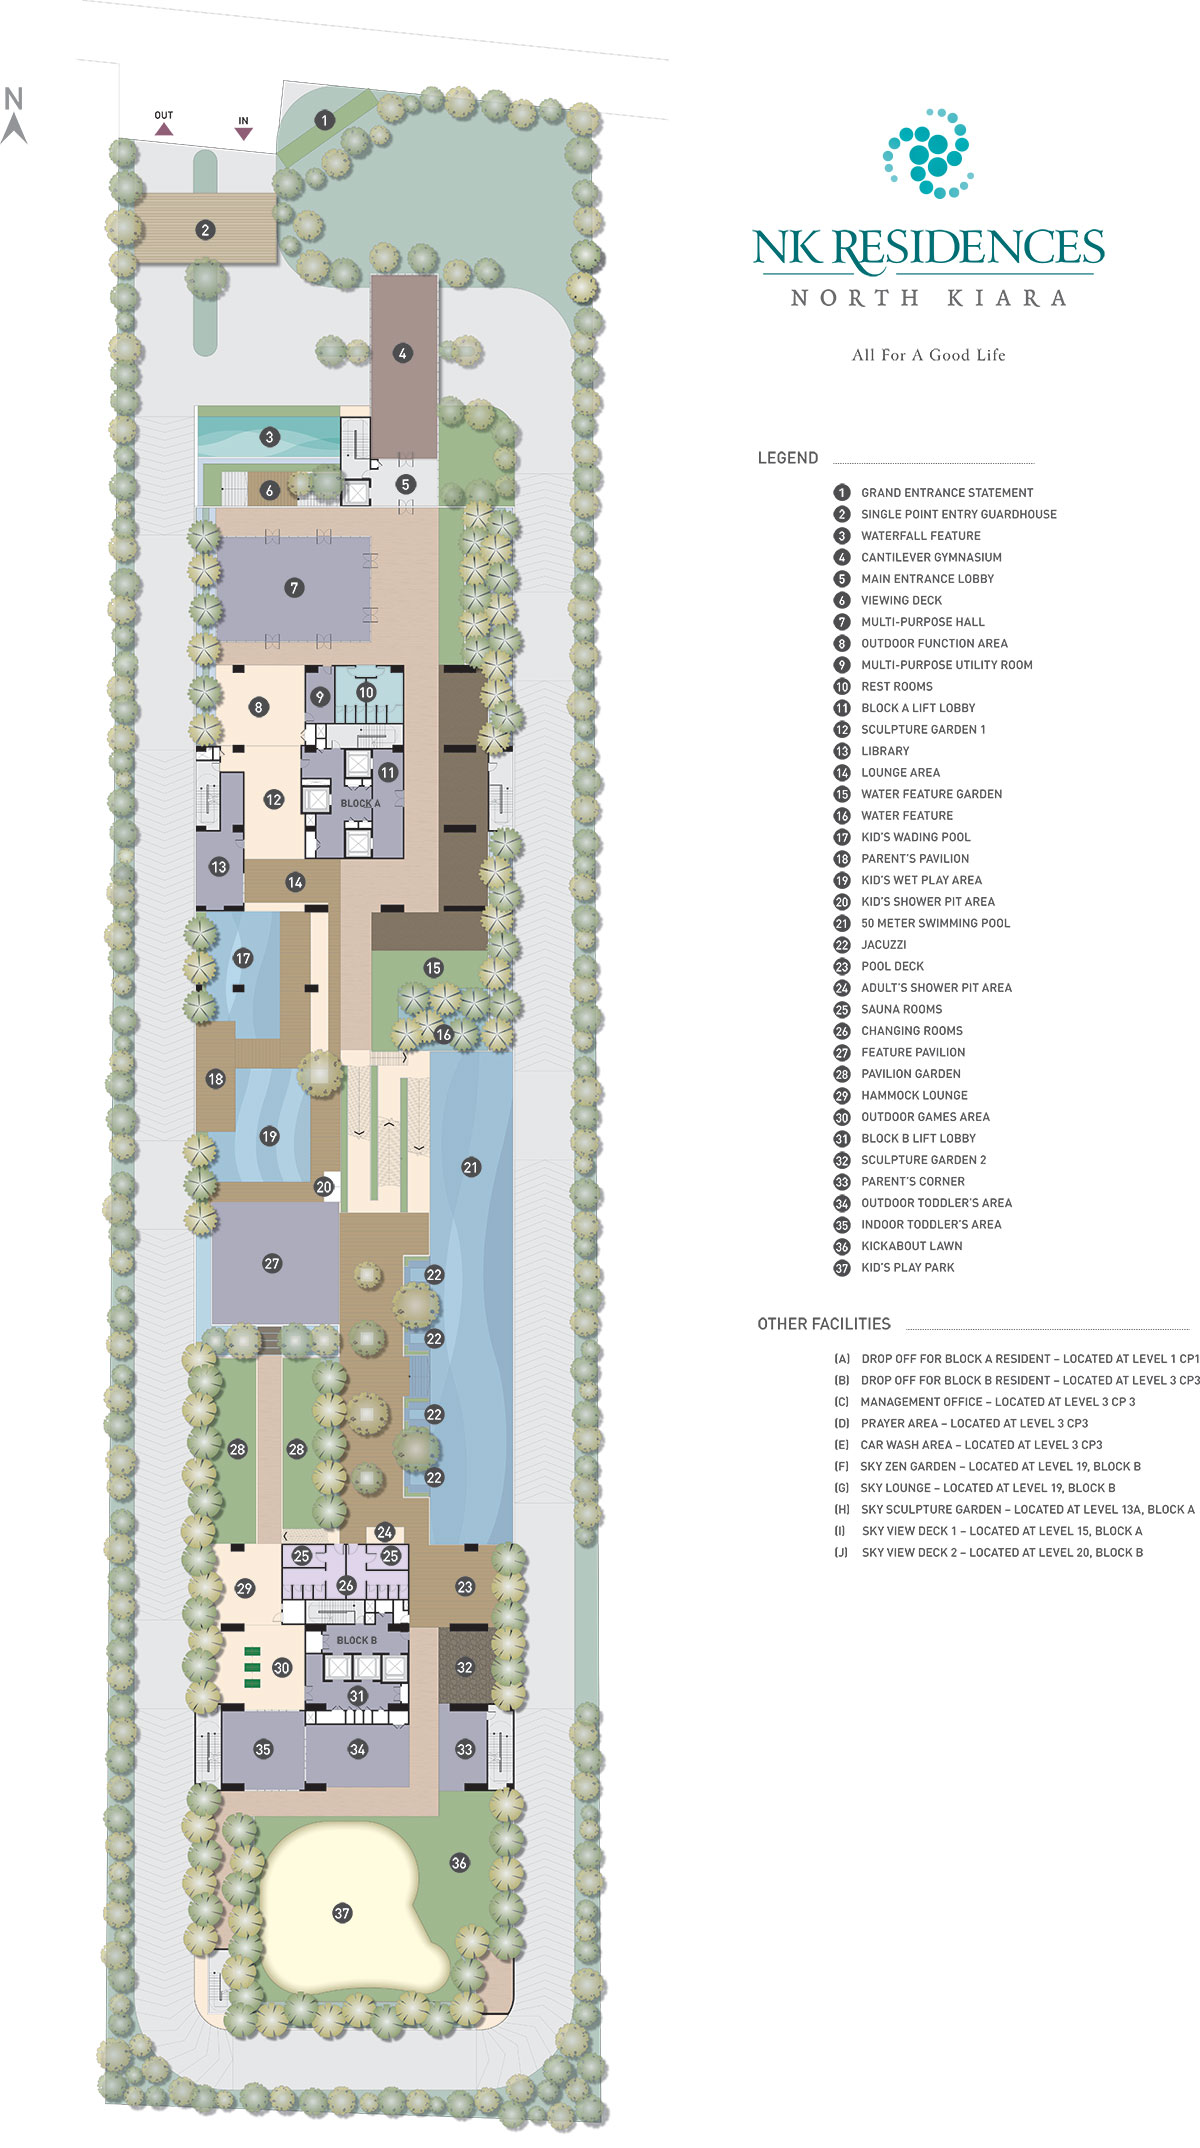 Site Plan of NK Residences